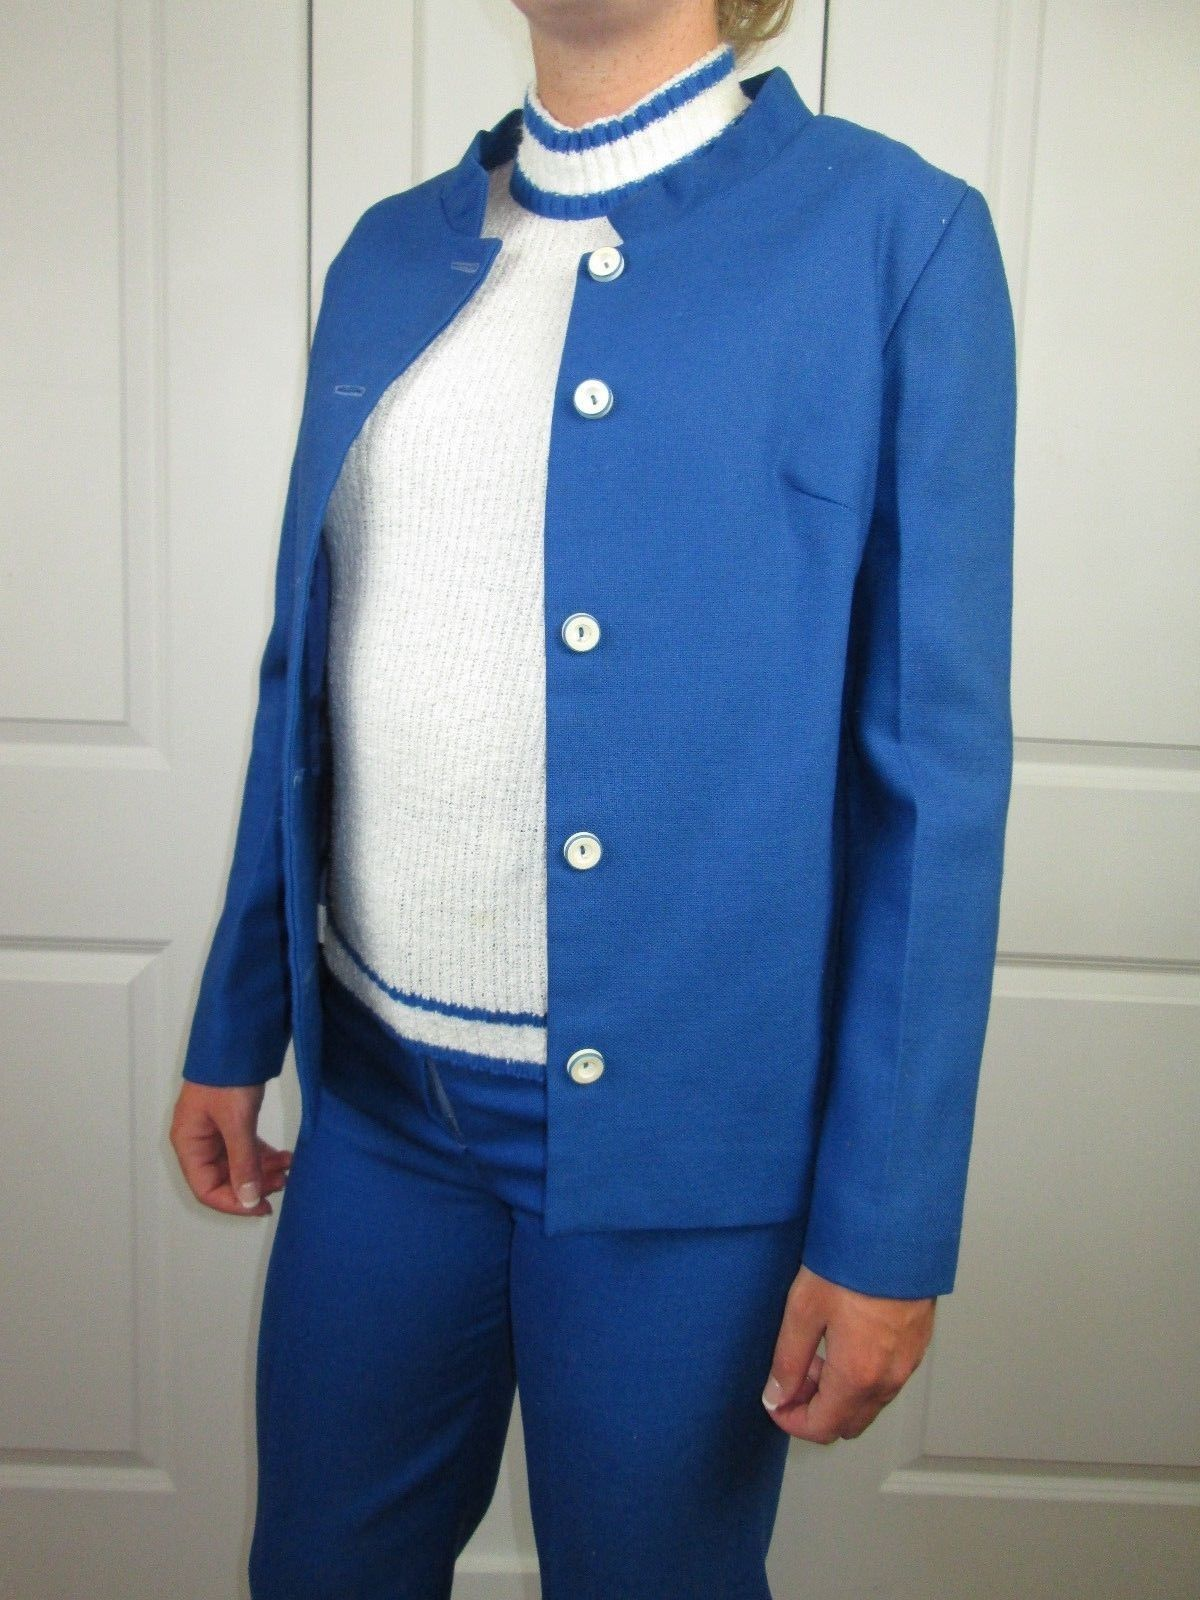 Primary image for 1970's Vintage 3 Piece Suit Jacket Pant Top Blue White Adult Small Office Attire